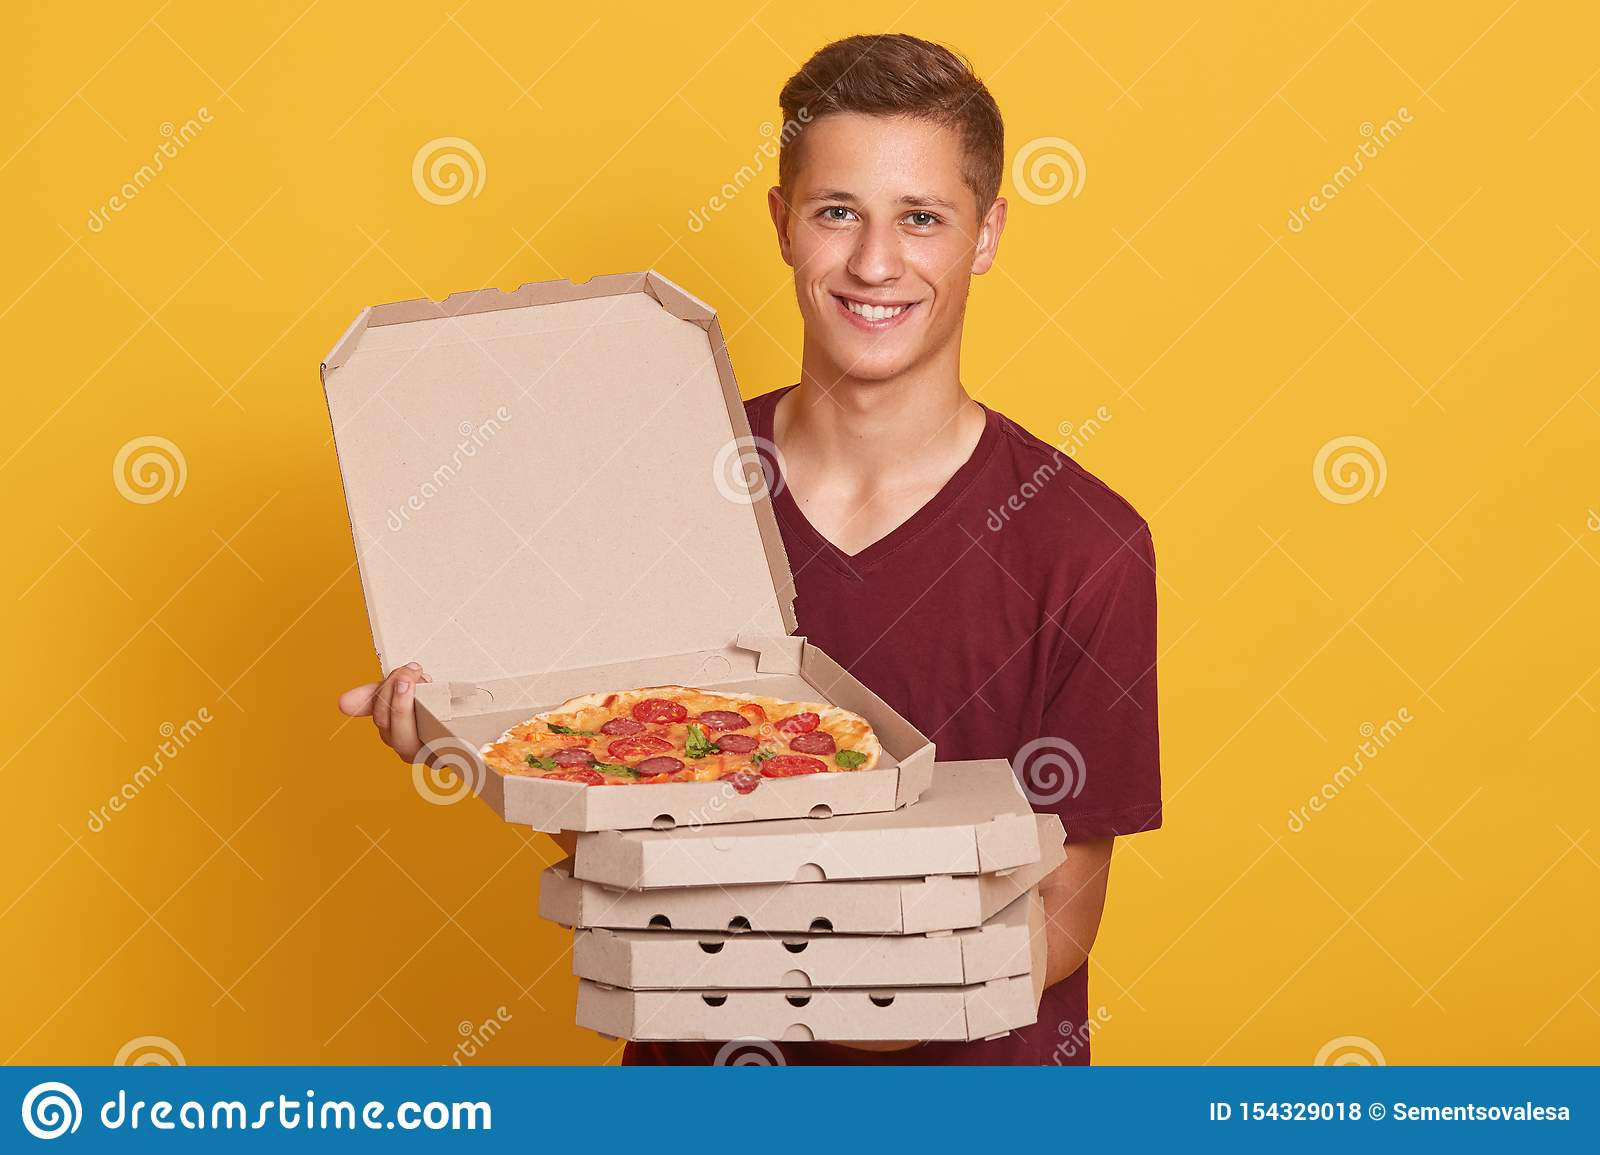 Handsome young delivery worker holding stack of pizza boxes, dressed casual t shirt, looking at camera and smiling, showing open